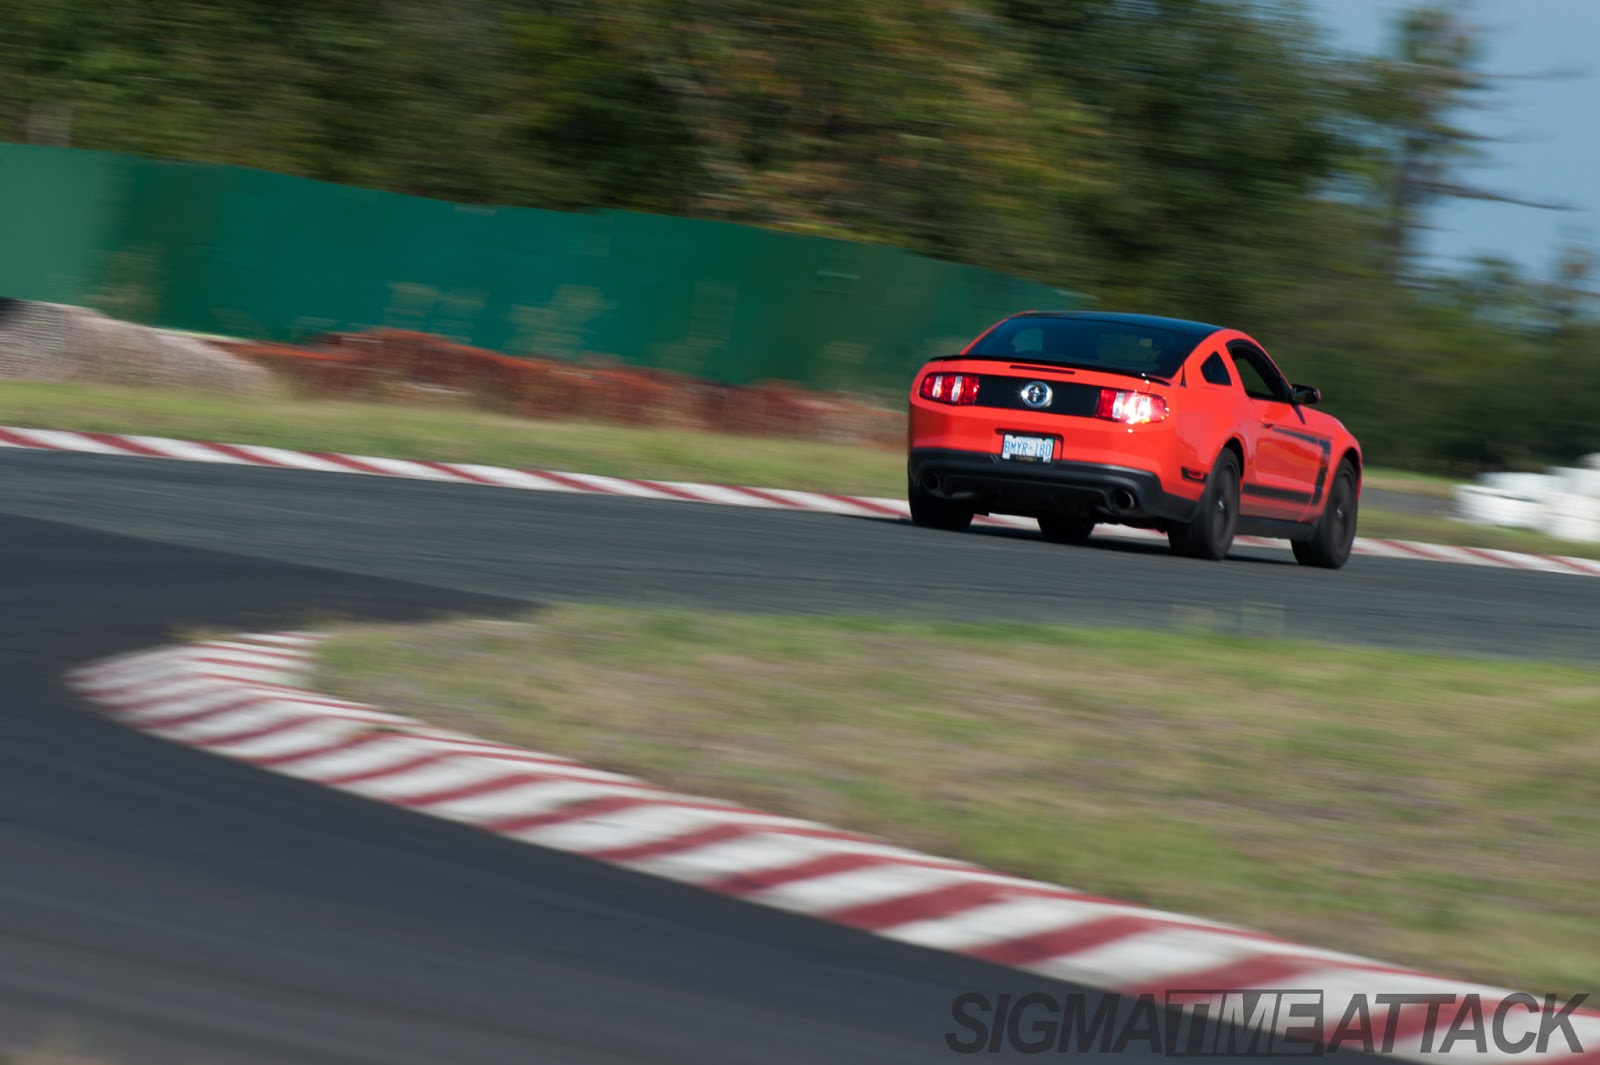 Sigma Time Attack @ Shannonville | Dreaming in 302ci